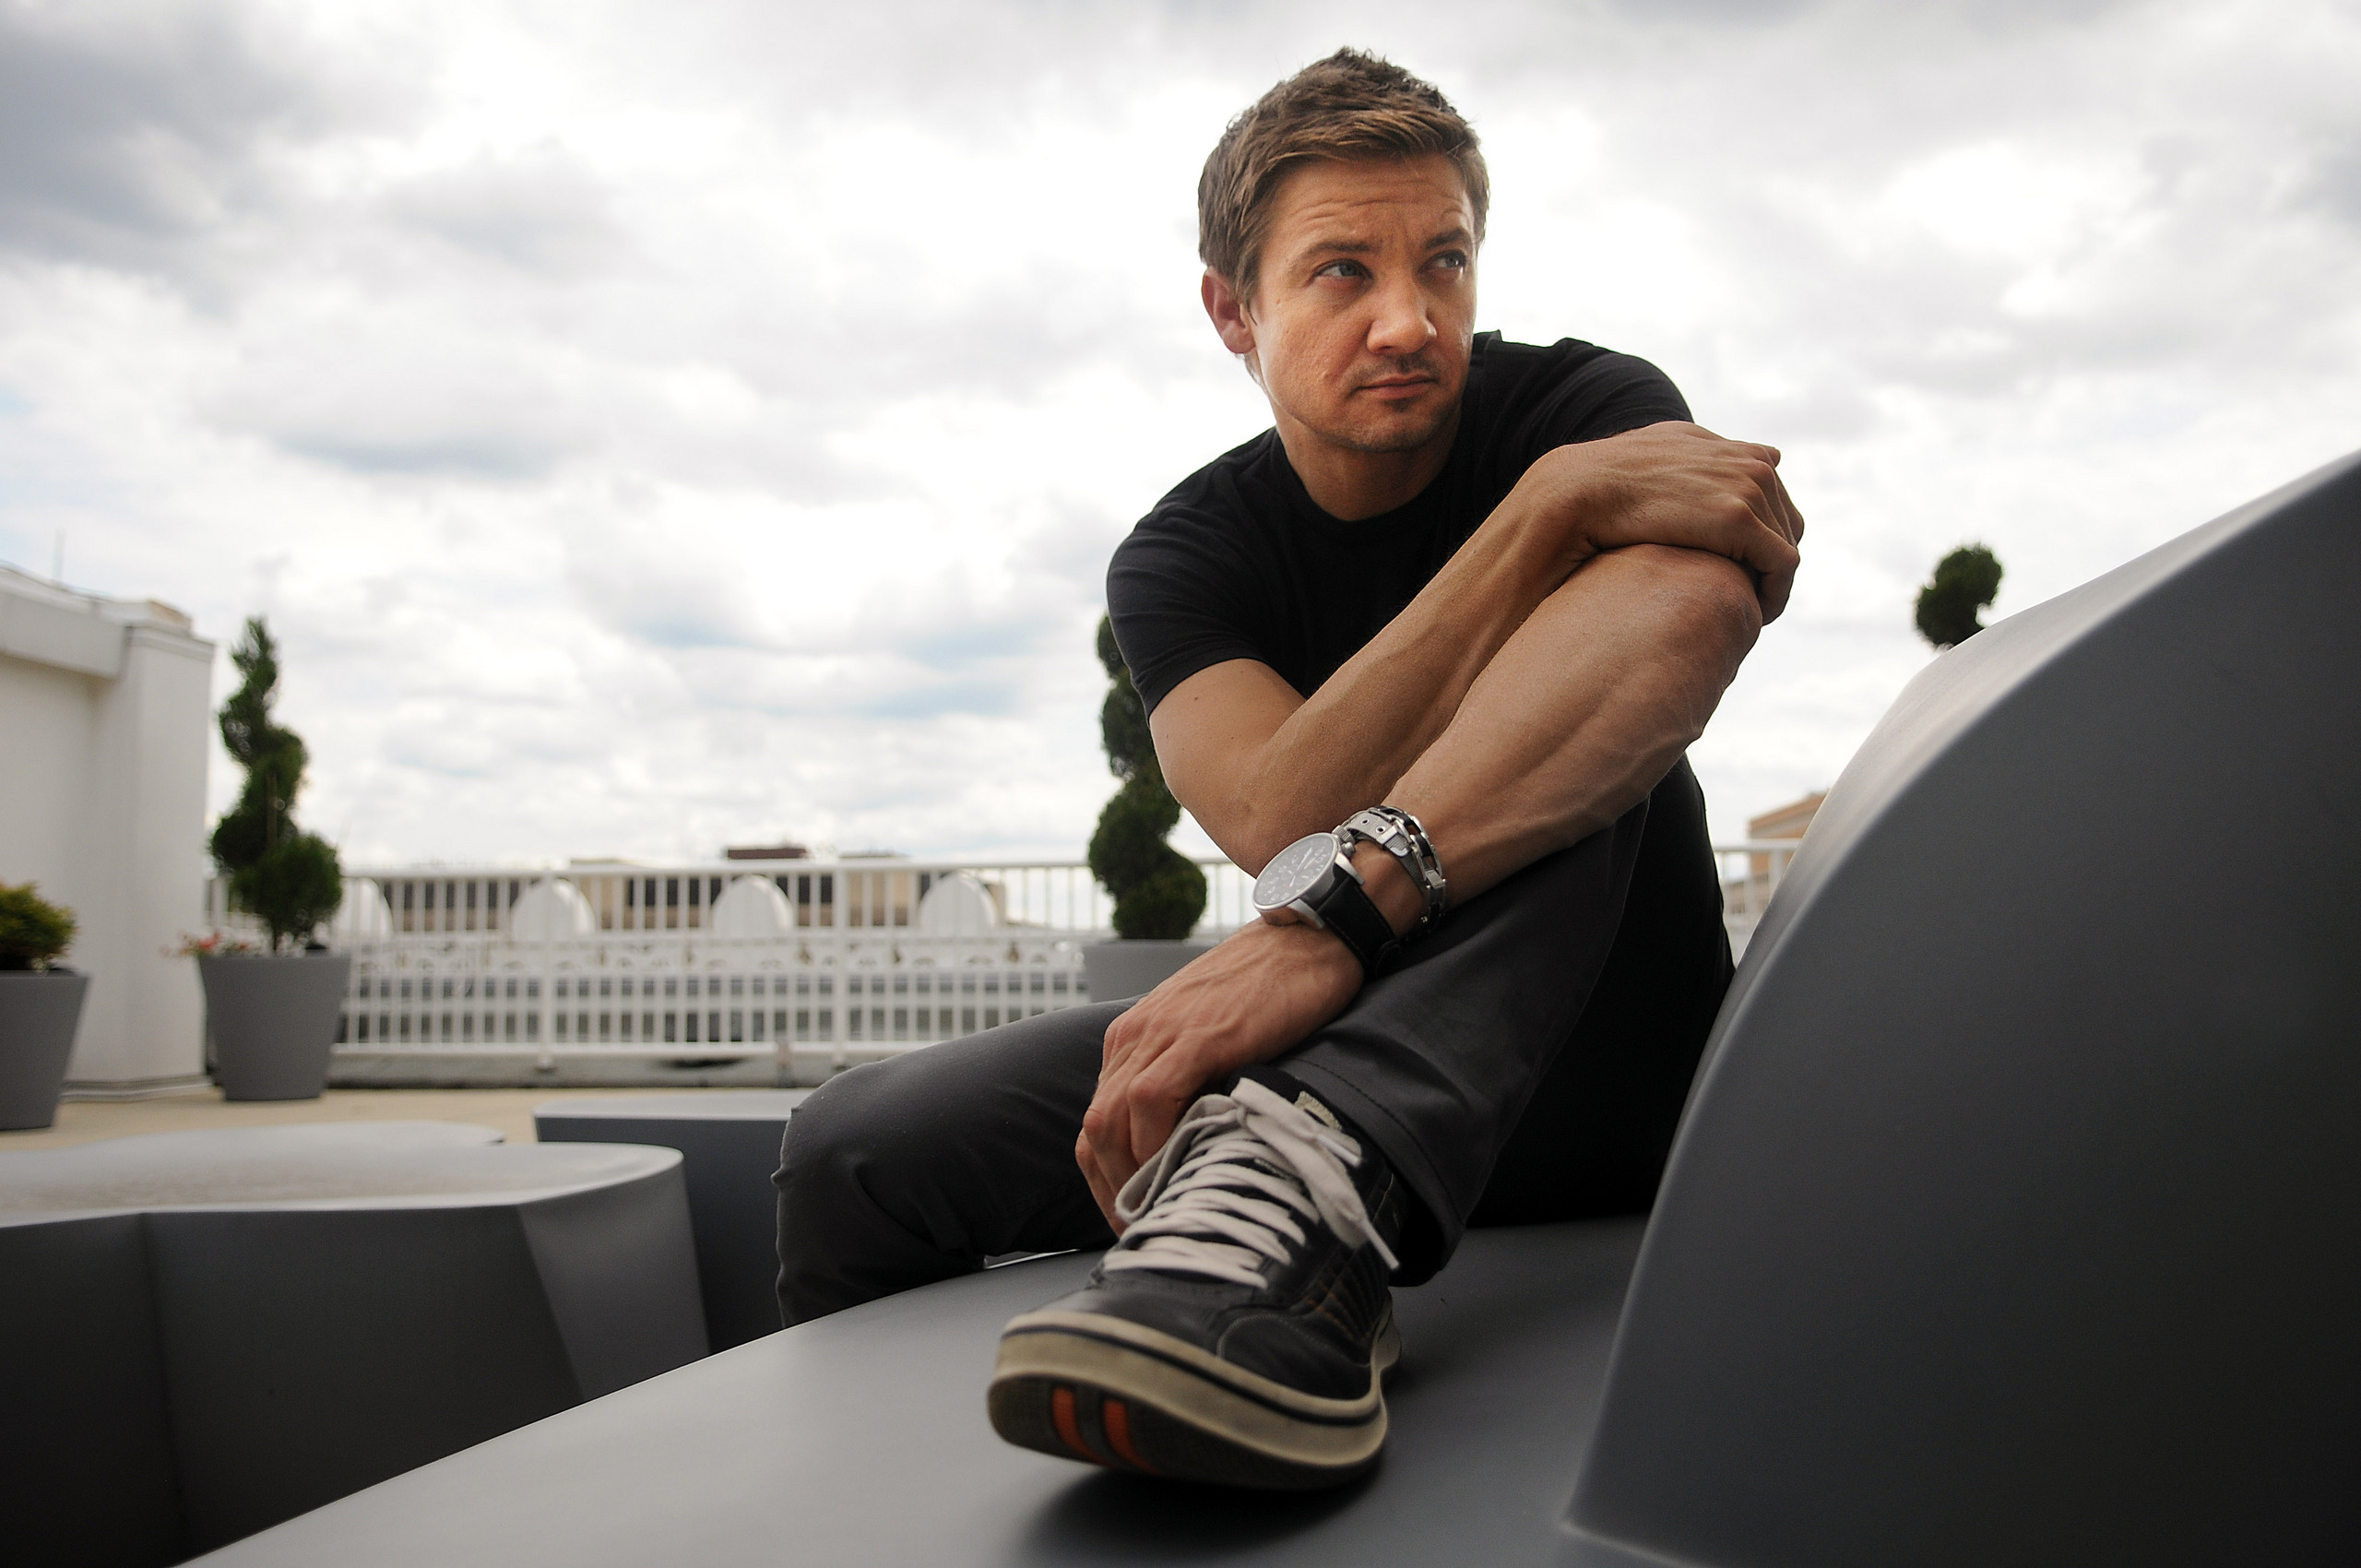 2560x1700 - Jeremy Renner Wallpapers 12